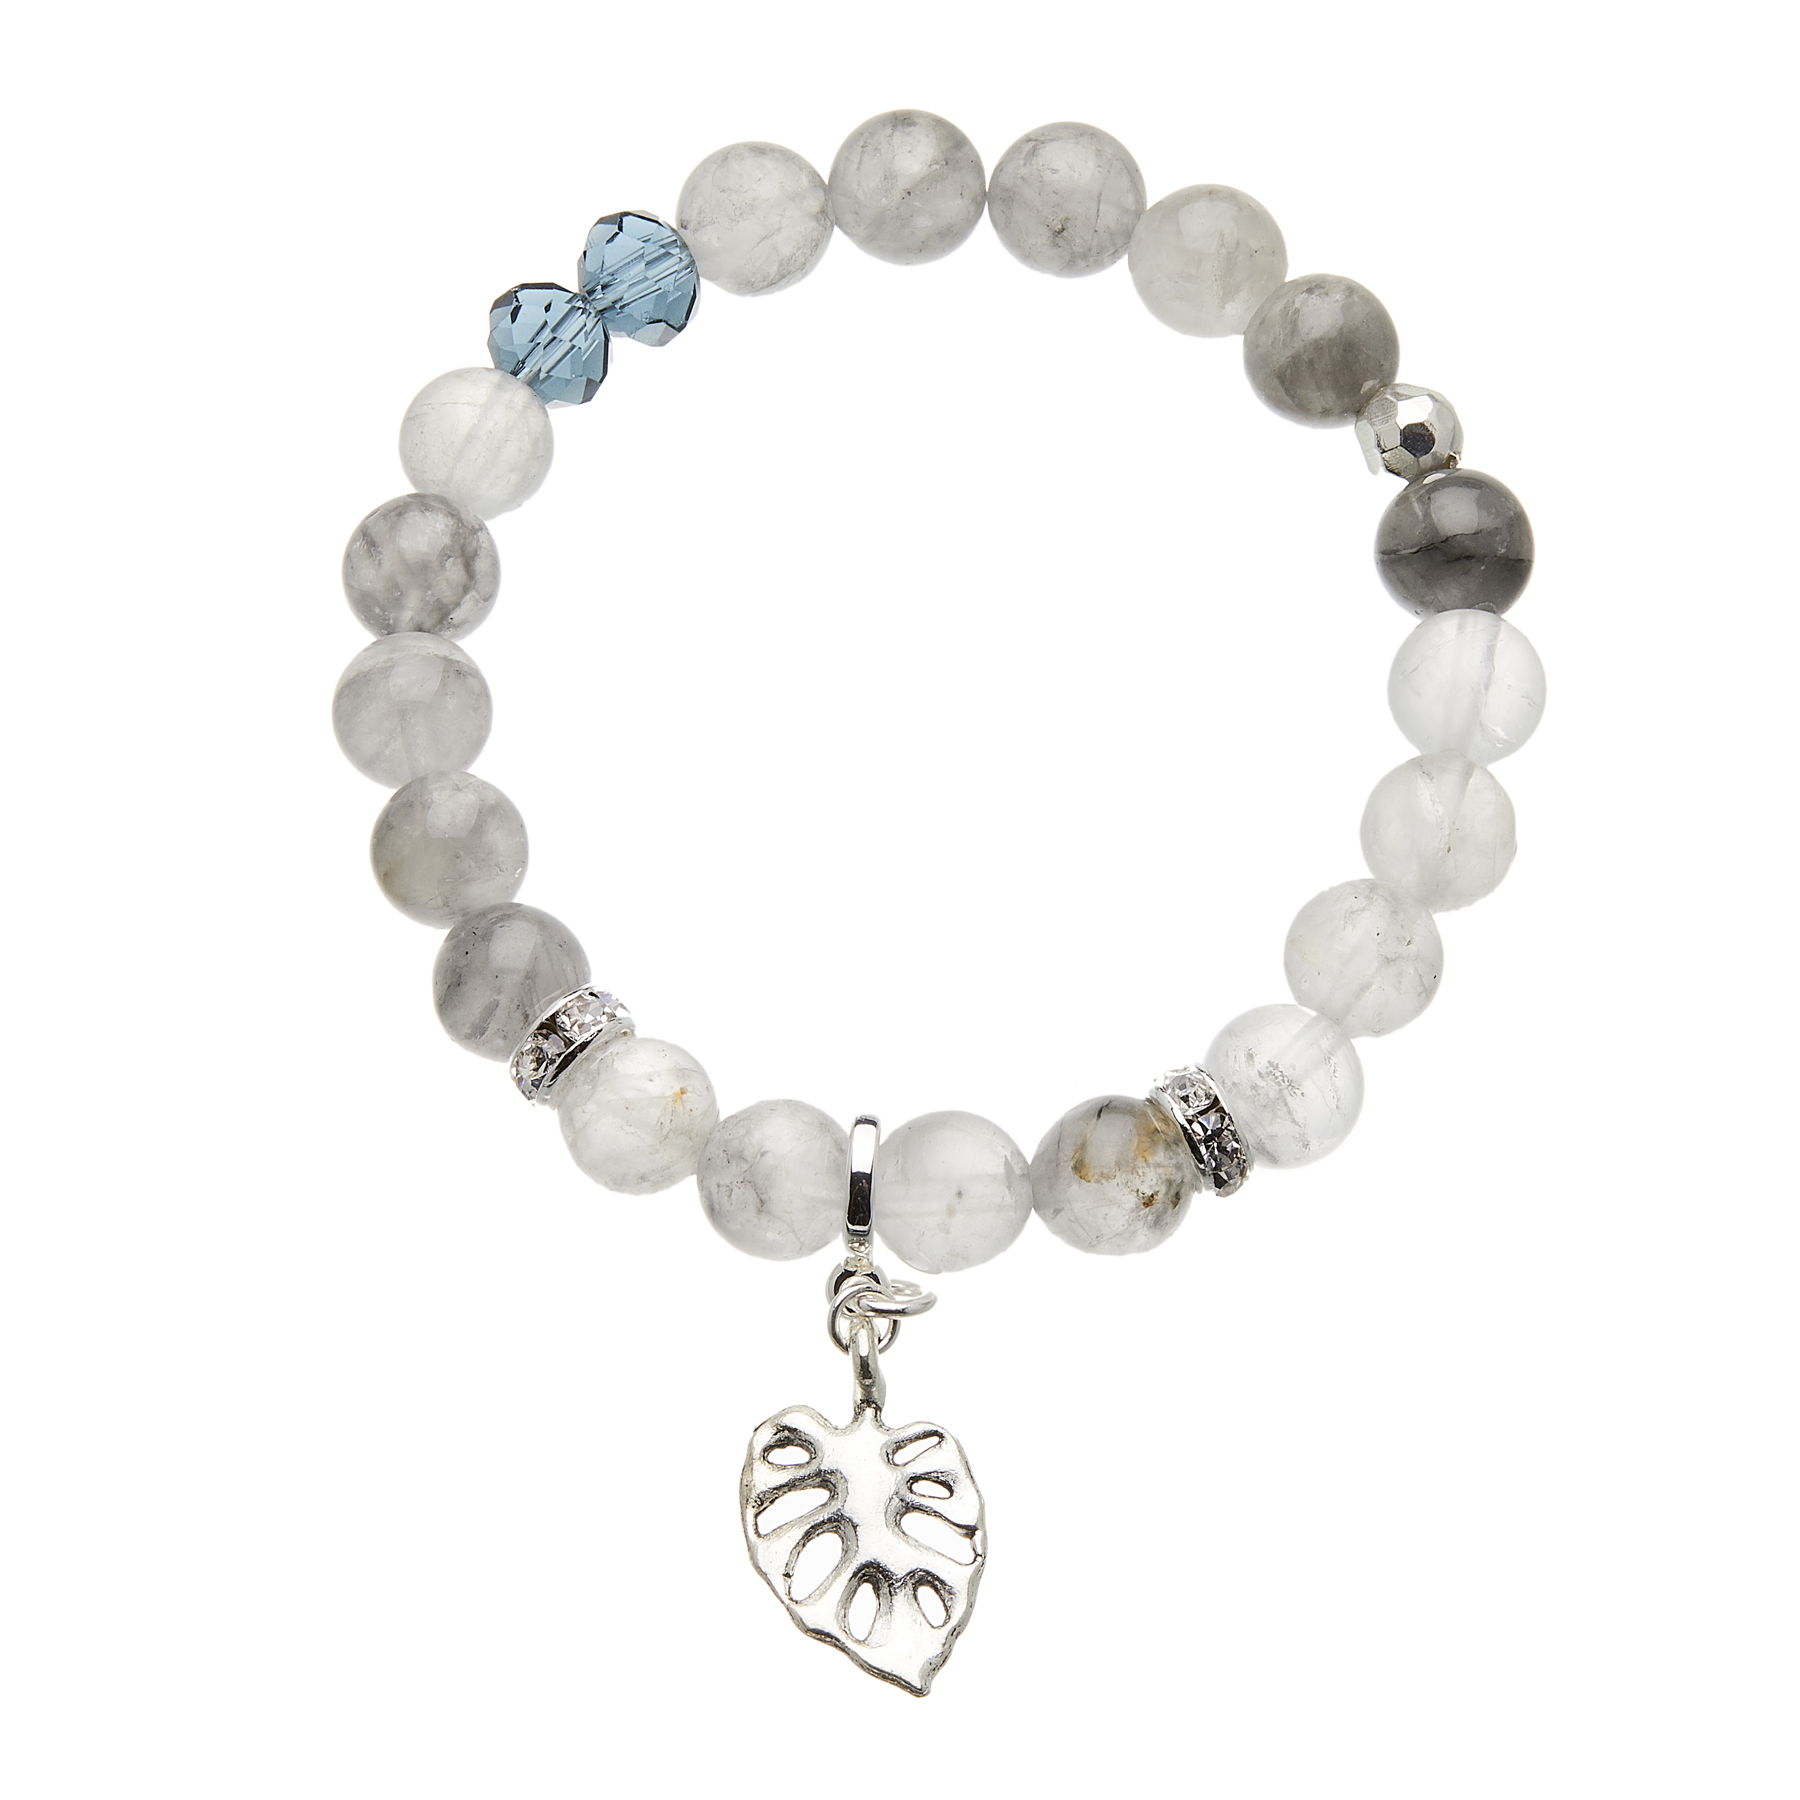 Cloud grey agate beaded Bracelet with silver leaf charm and crystals - Rae G03